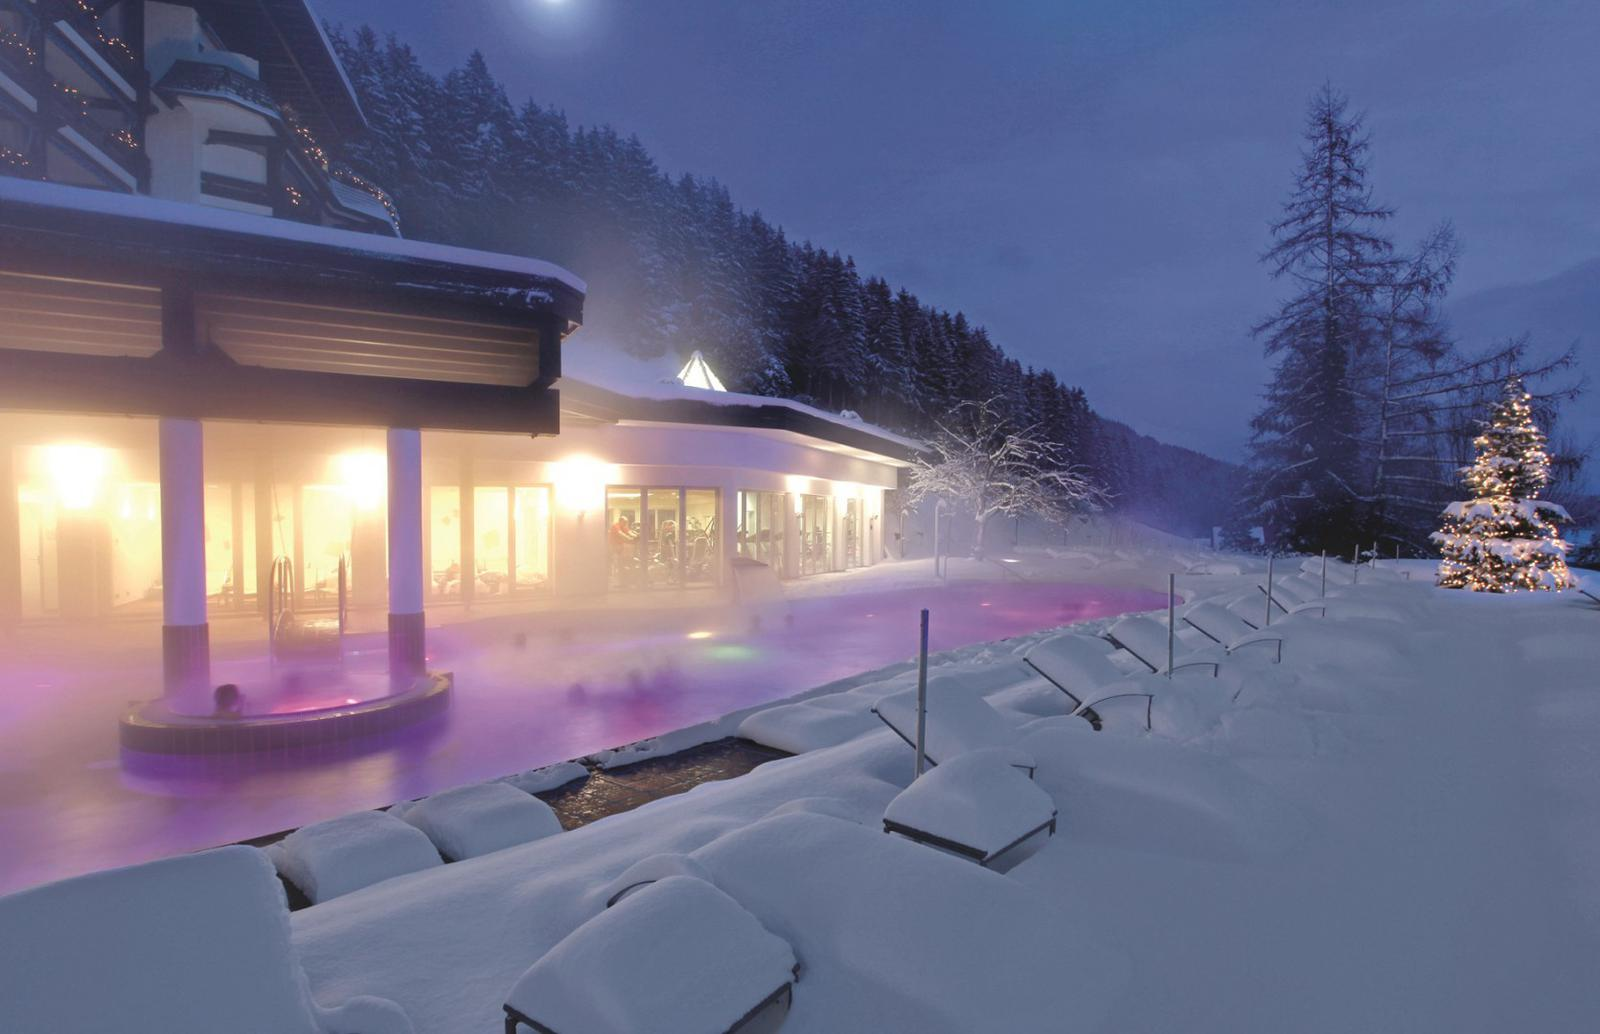 Single wellnesshotel schwarzwald